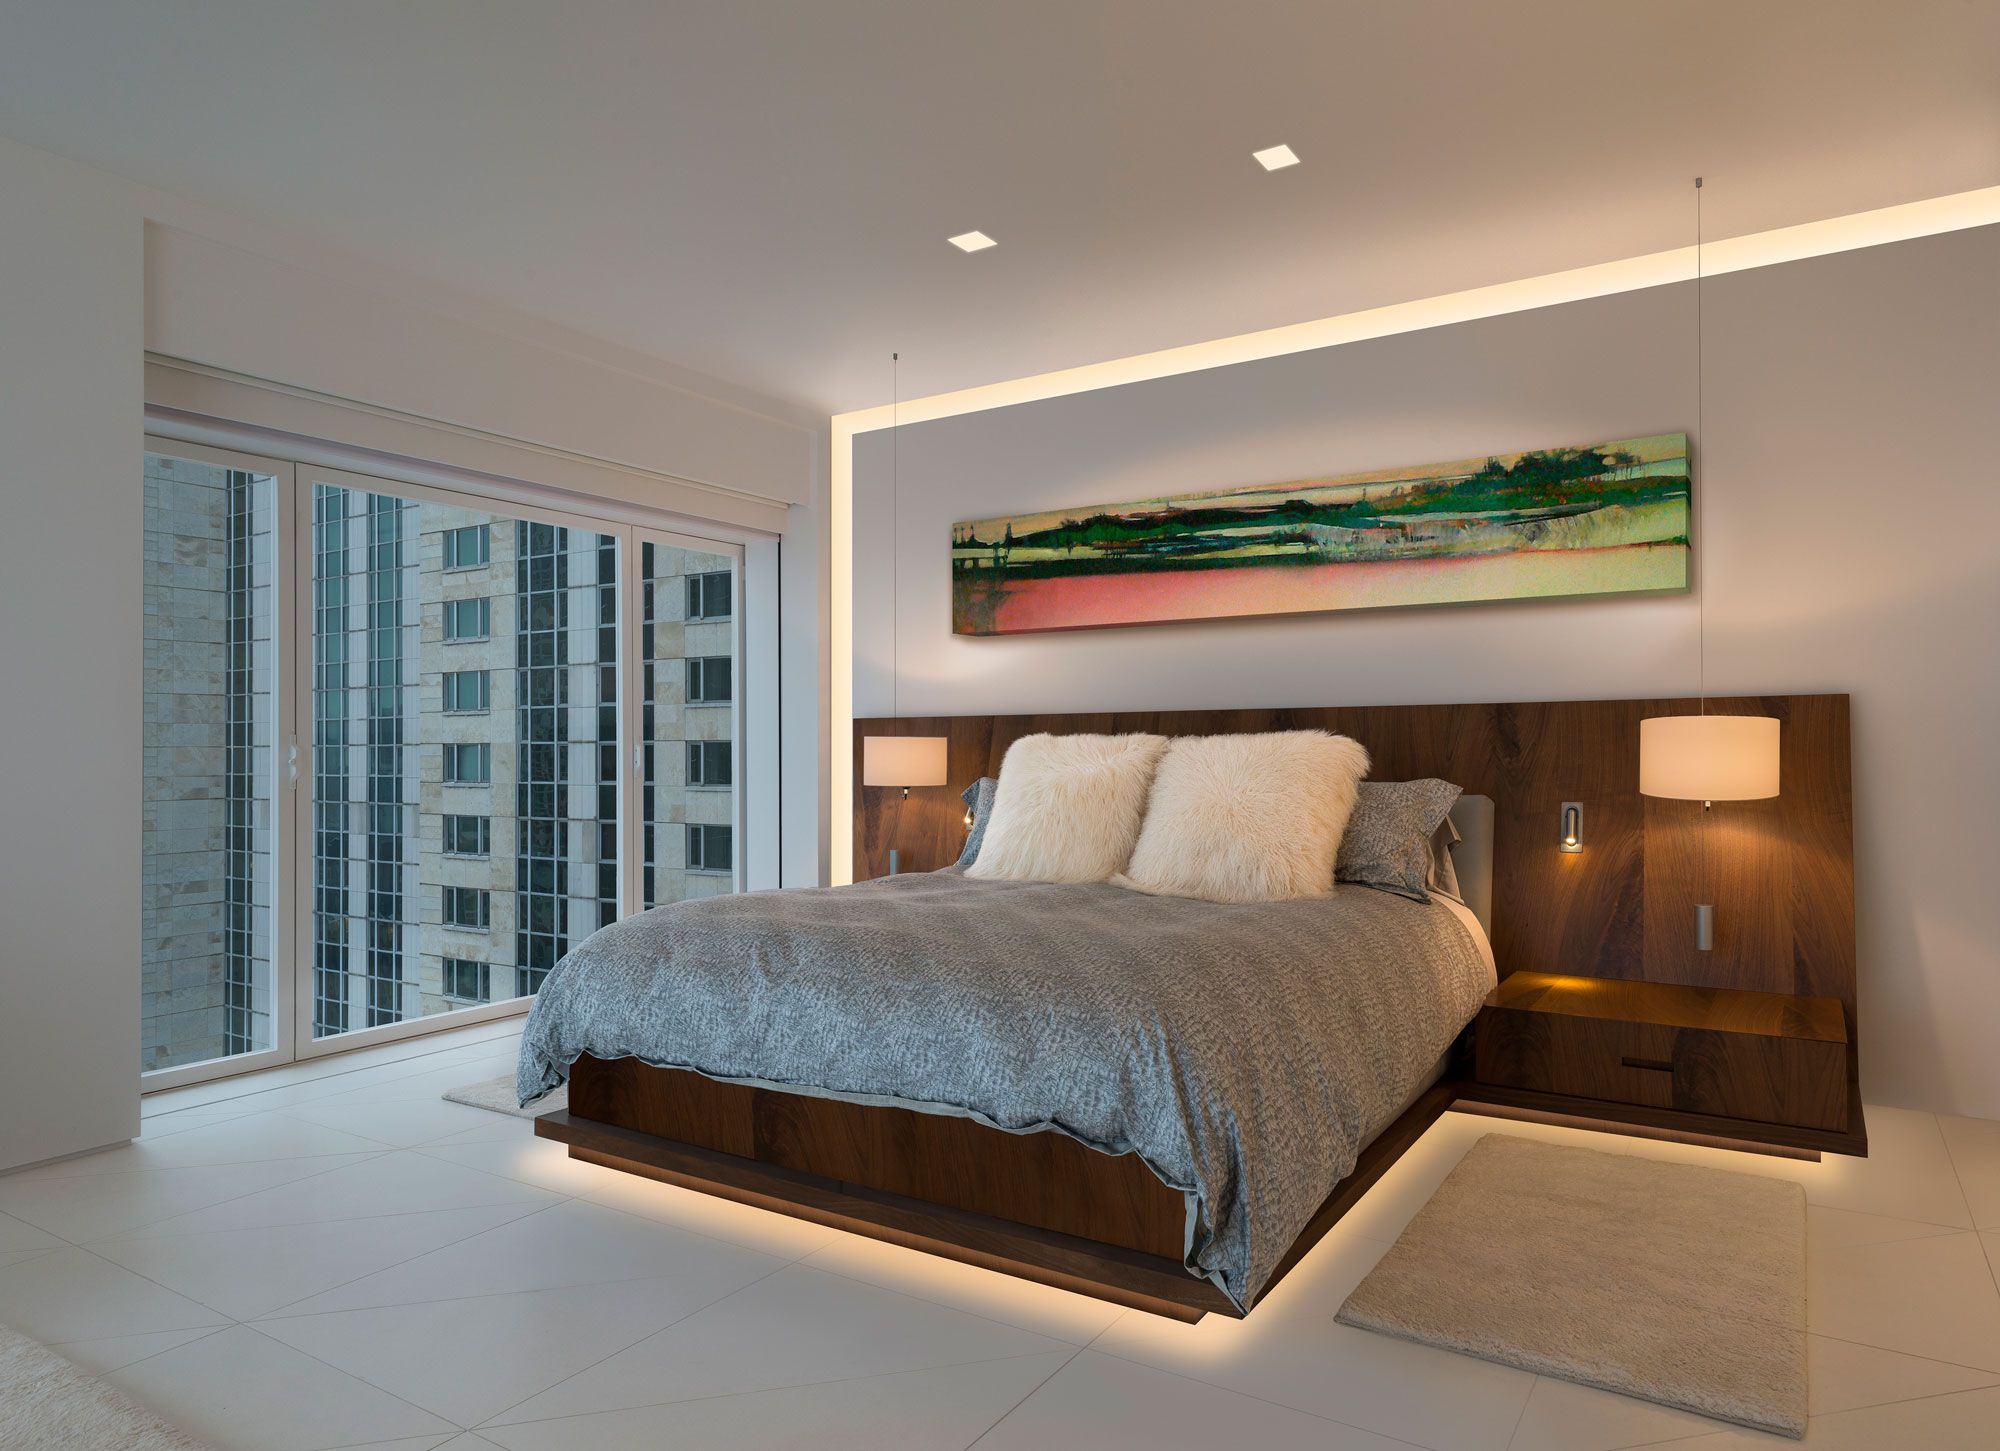 Verge Wall 5W Plaster-In System by PureEdge Lighting | VG-5WDC-5FT-35K